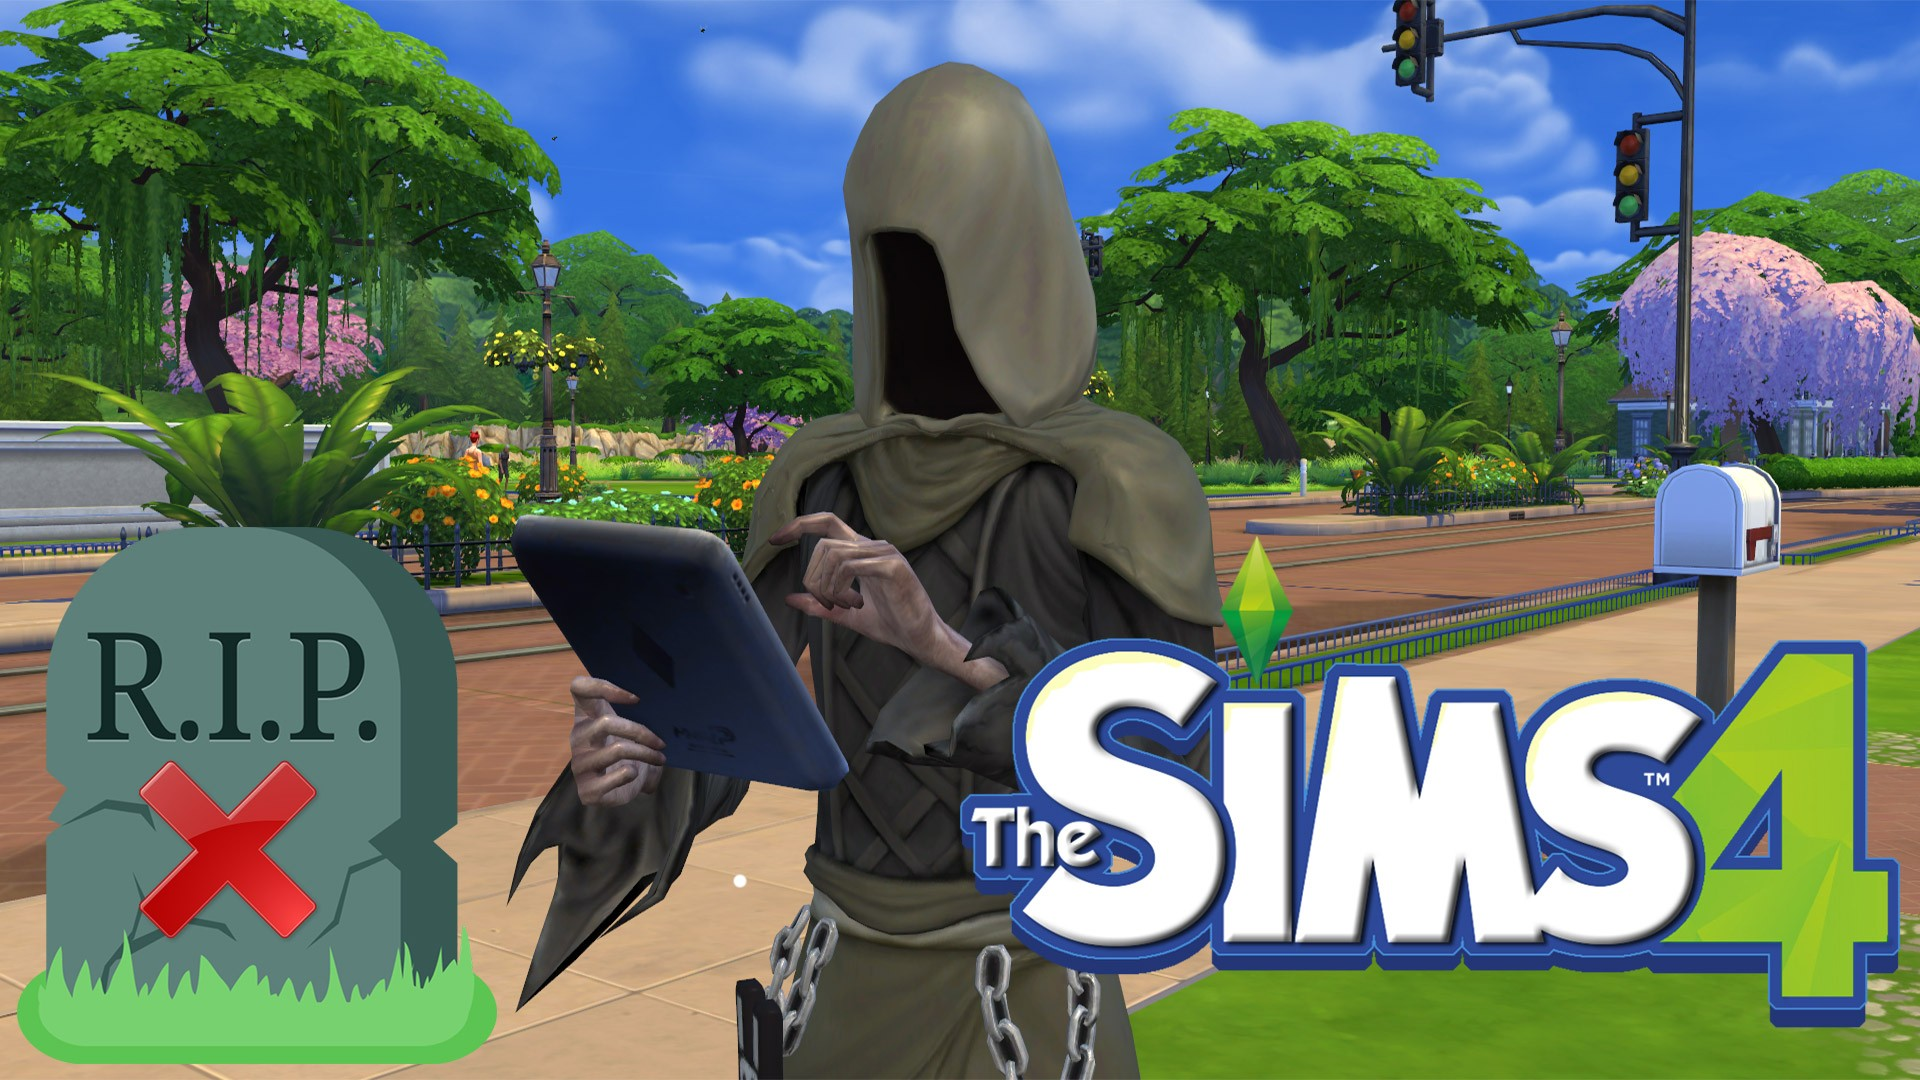 The Sims 4 Immortality Cheat - Turn Death Off - The Sim Architect